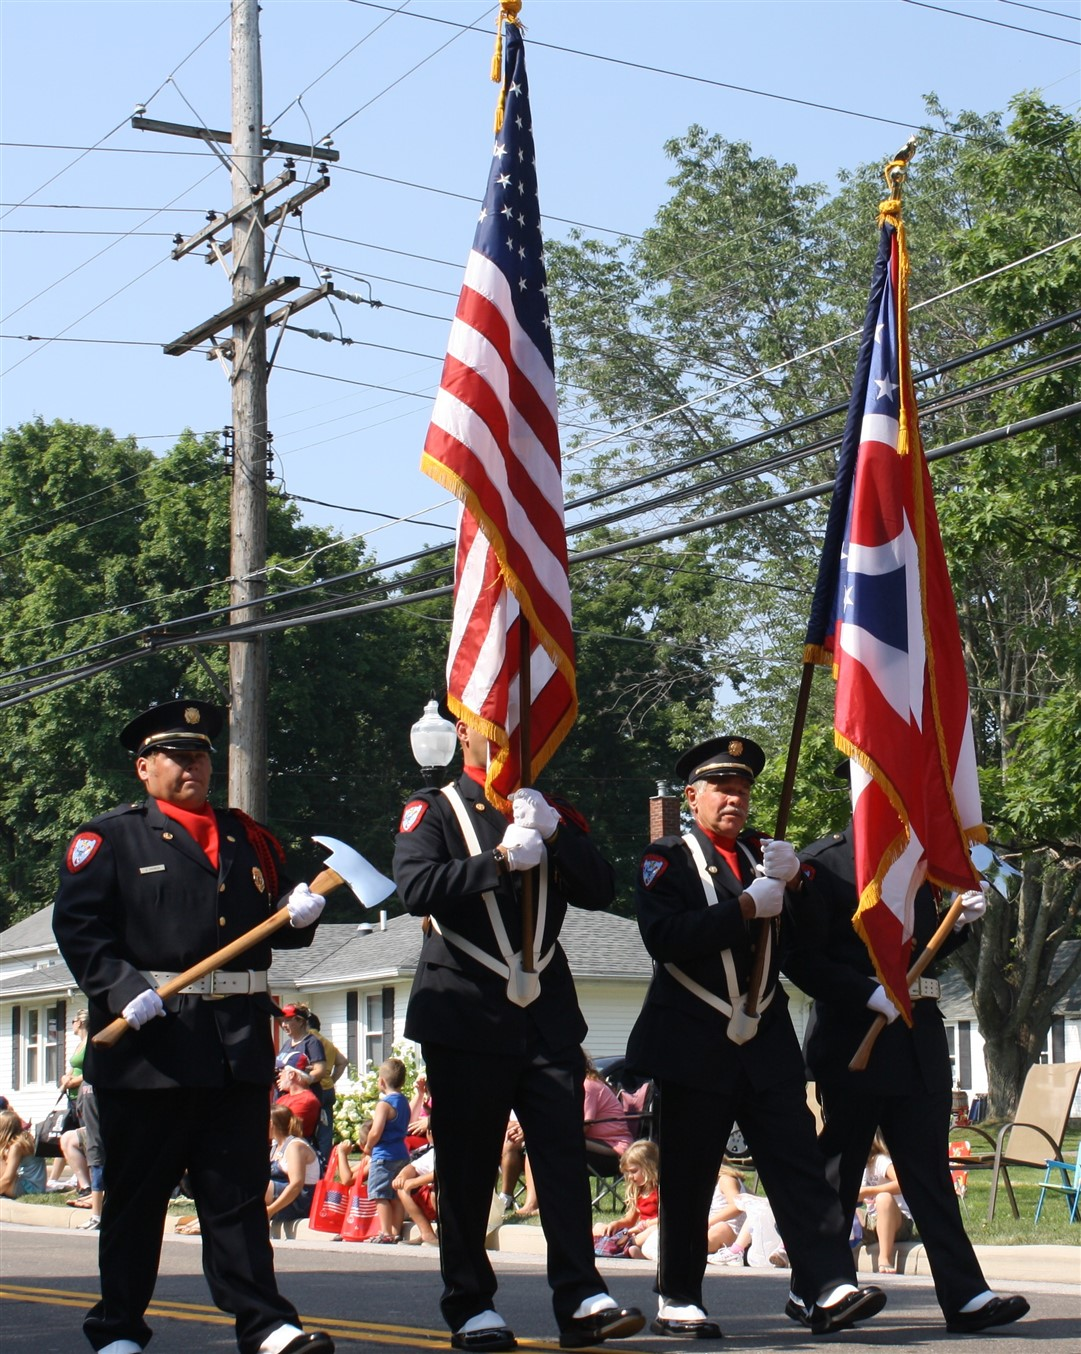 2010 07 05  Canfield Independence Day Parade 5.jpg